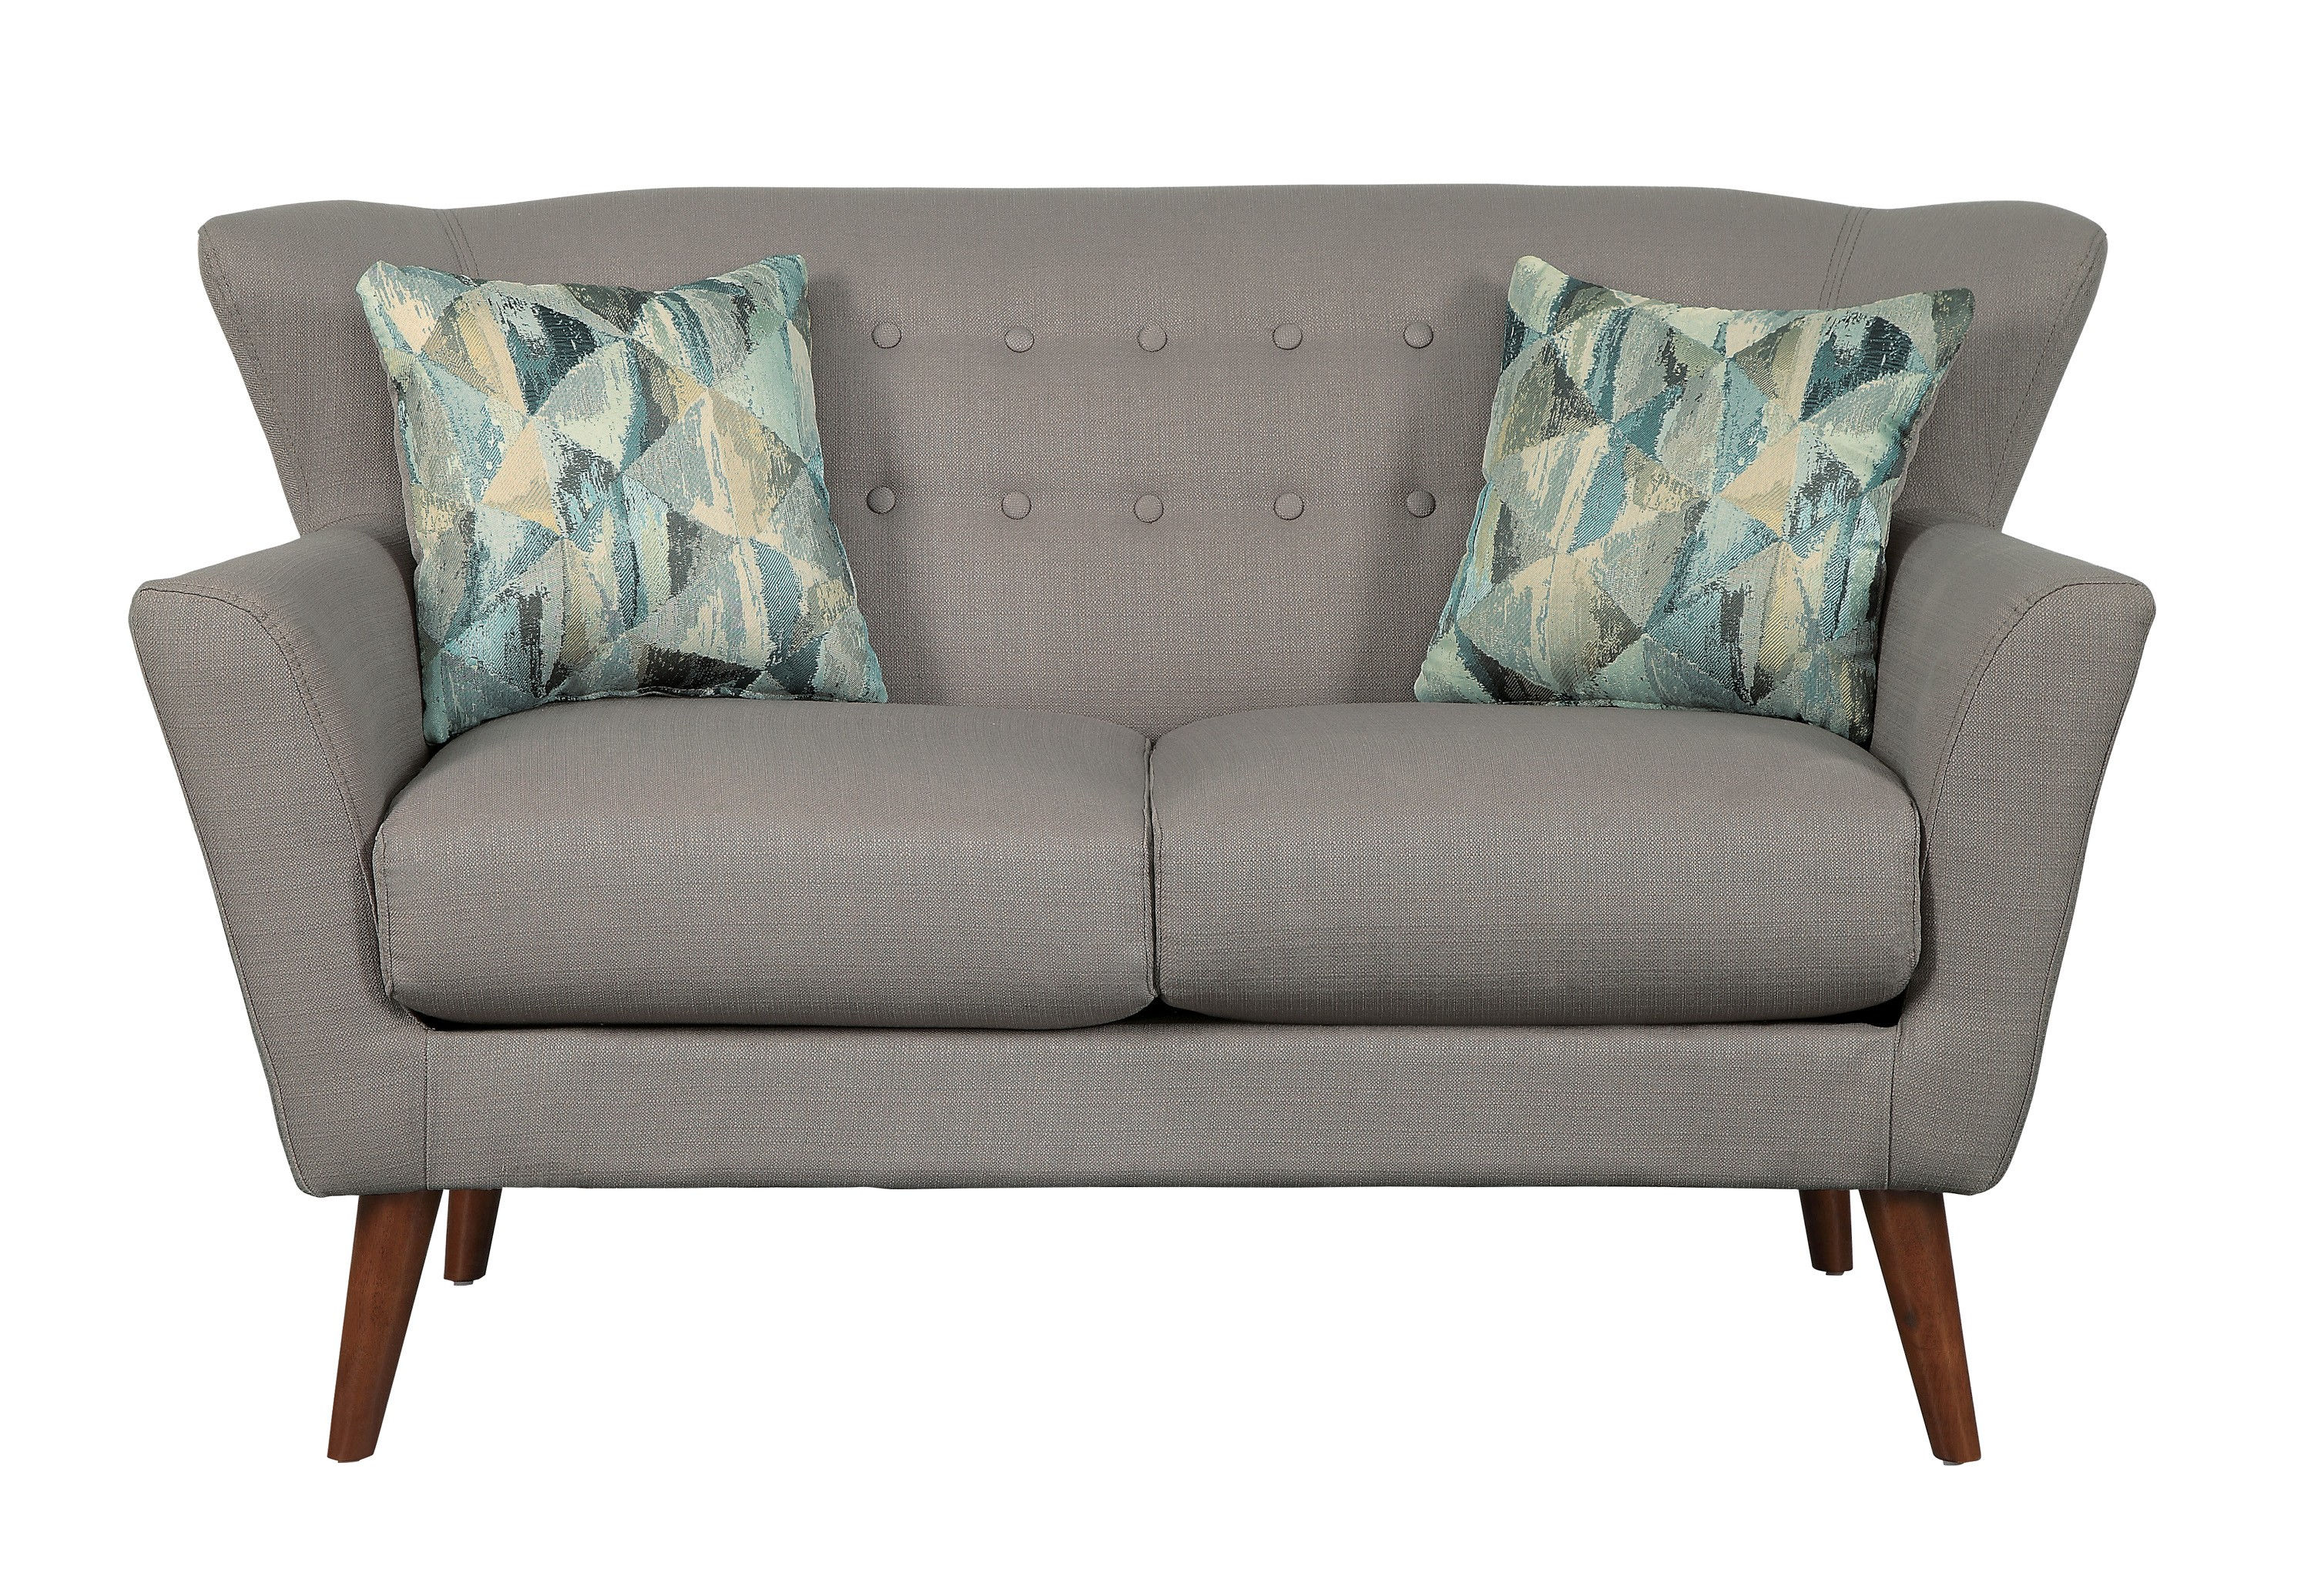 Awesome Home Elegance Maja Gray Loveseat With Two Pillows Gamerscity Chair Design For Home Gamerscityorg